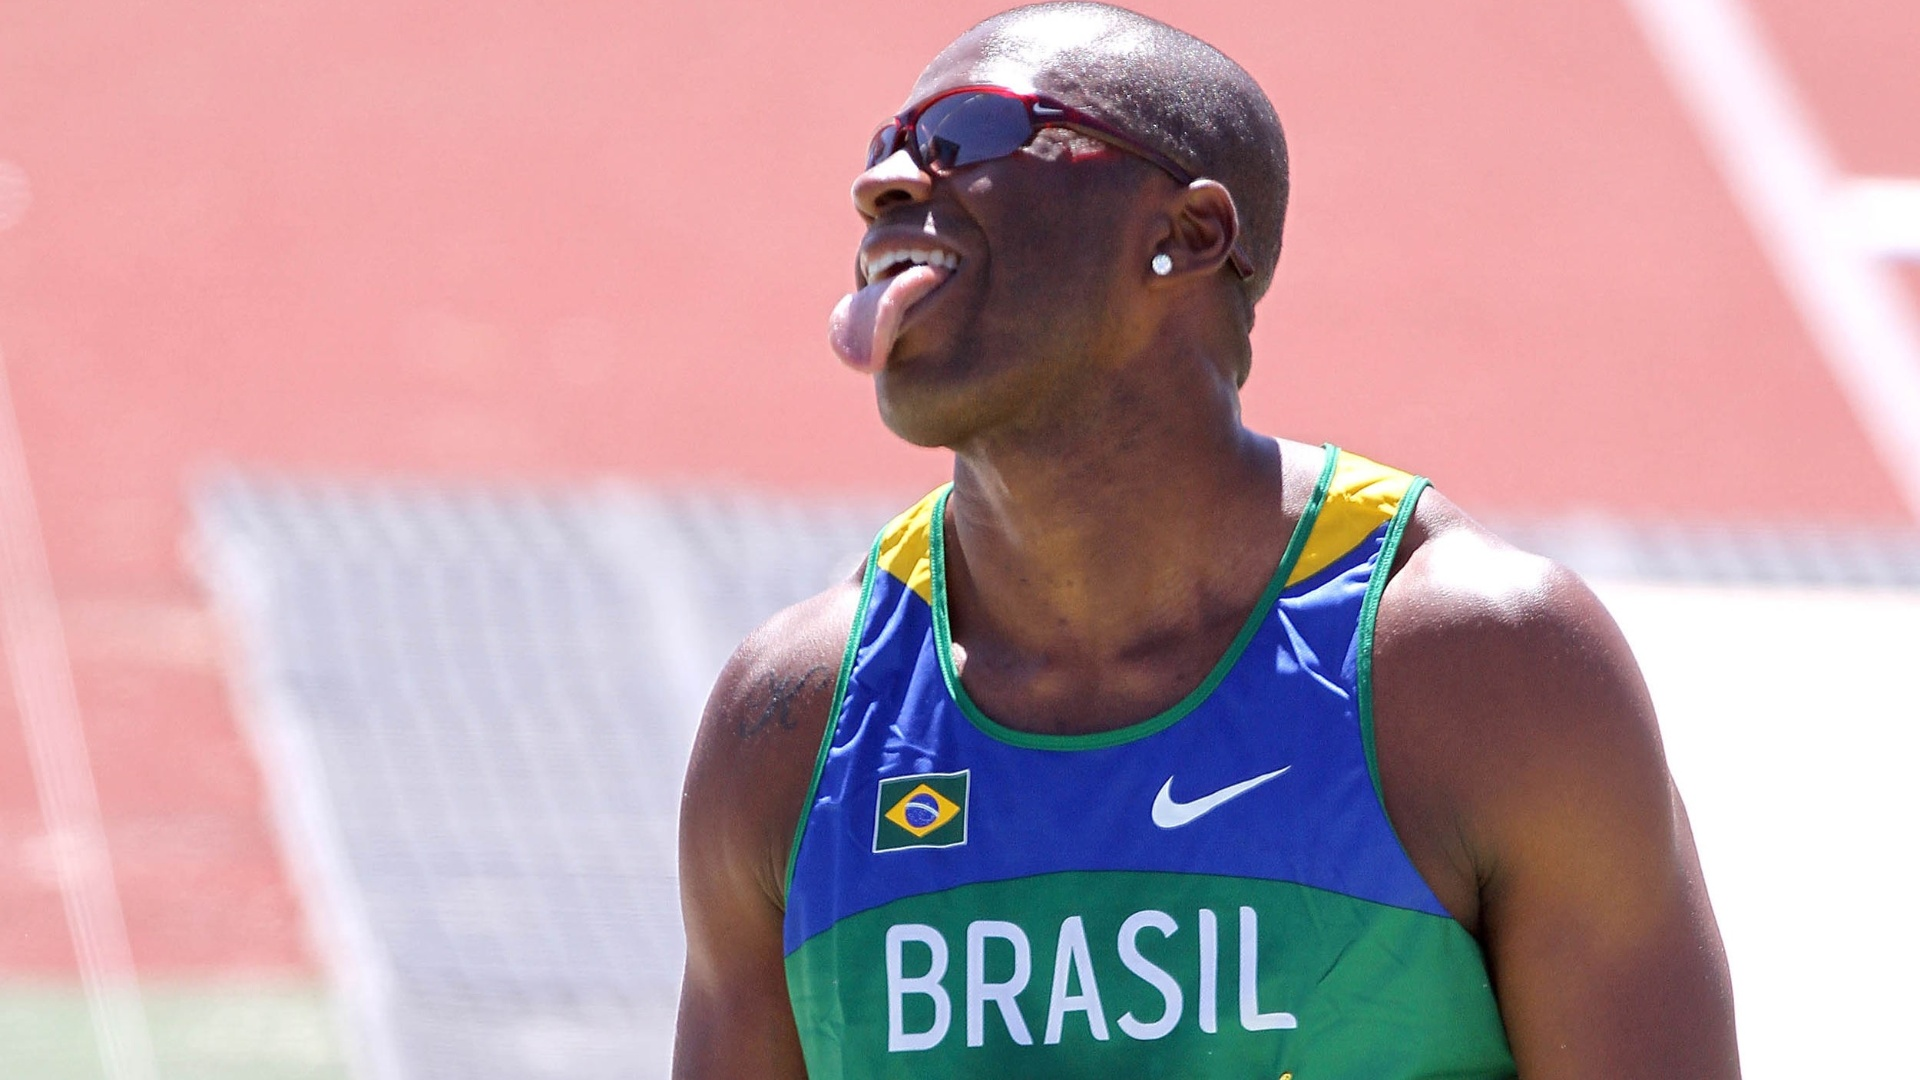 Brasileiro Jefferson Sabino participa das eliminatrias do salto em distncia em Guadalajara